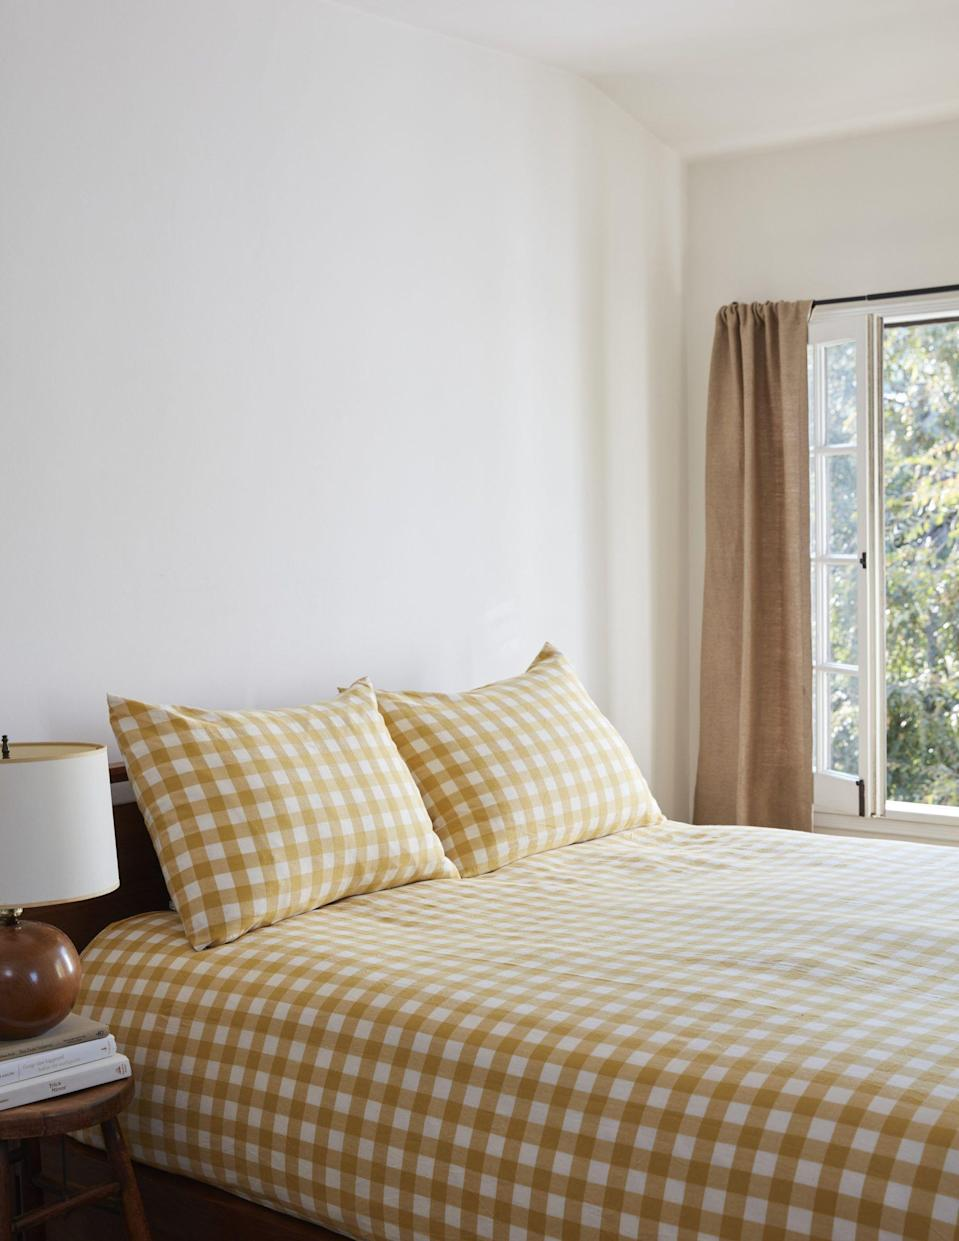 """<p><strong>Heather Taylor Home</strong></p><p>heathertaylorhome.com</p><p><strong>$275.00</strong></p><p><a href=""""https://heathertaylorhome.com/shop/gingham-sunflower-duvet-cover/"""" rel=""""nofollow noopener"""" target=""""_blank"""" data-ylk=""""slk:Shop Now"""" class=""""link rapid-noclick-resp"""">Shop Now</a></p><p>We all want to add a pop of color to our homes, right? This warm, sunny yellow is the way to go—we recommend starting with Heather Taylor Home's new sunflower gingham bedding.</p>"""